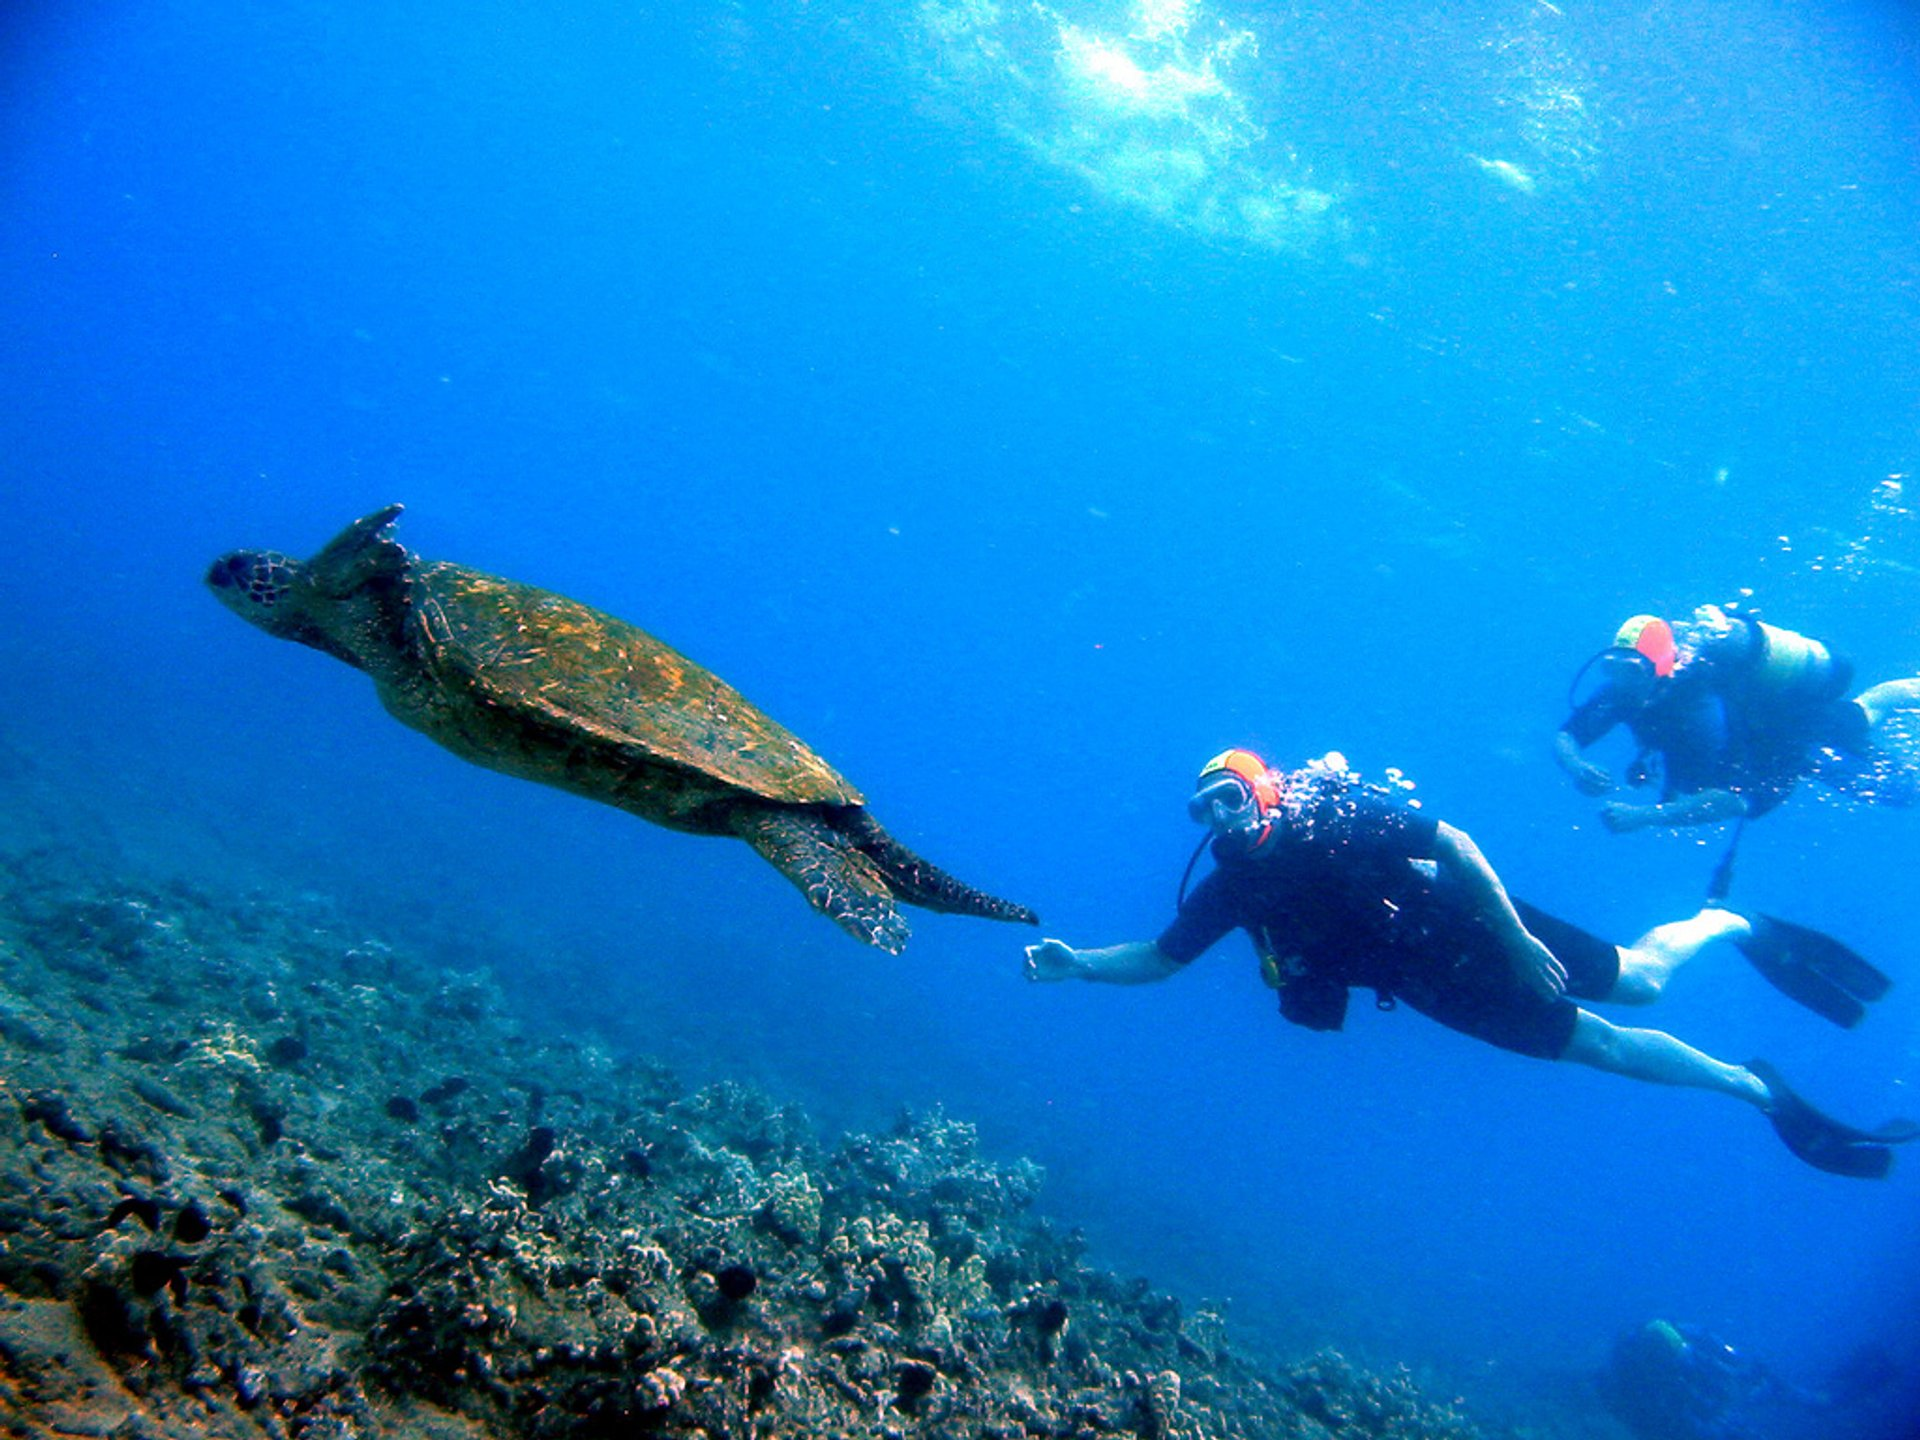 Scuba Diving in Hawaii 2020 - Best Time